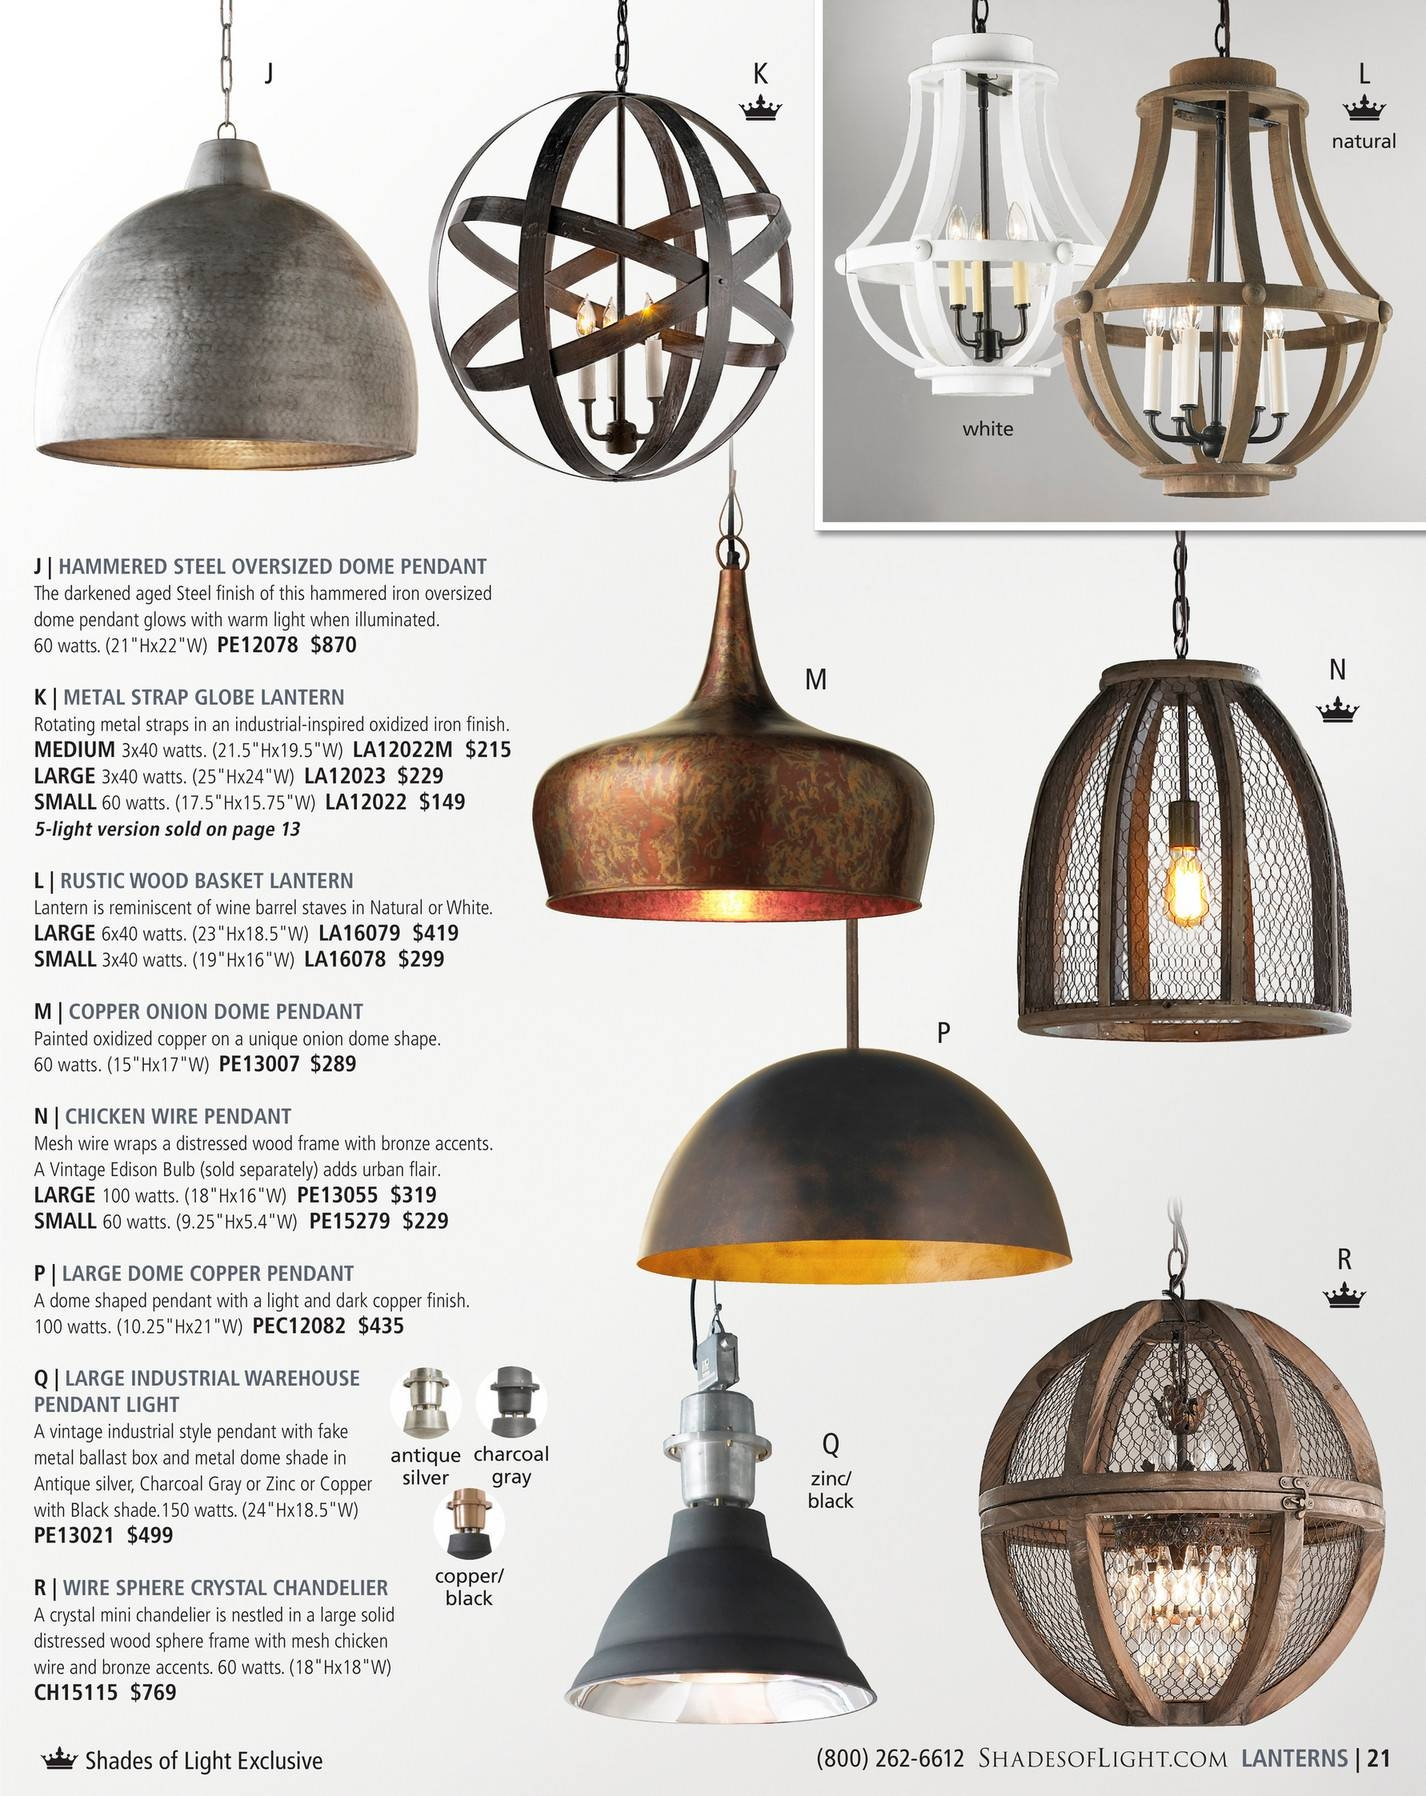 Shades Of Light - Farmhouse Classics 2017 - Page 20-21 with Large Dome  Pendant